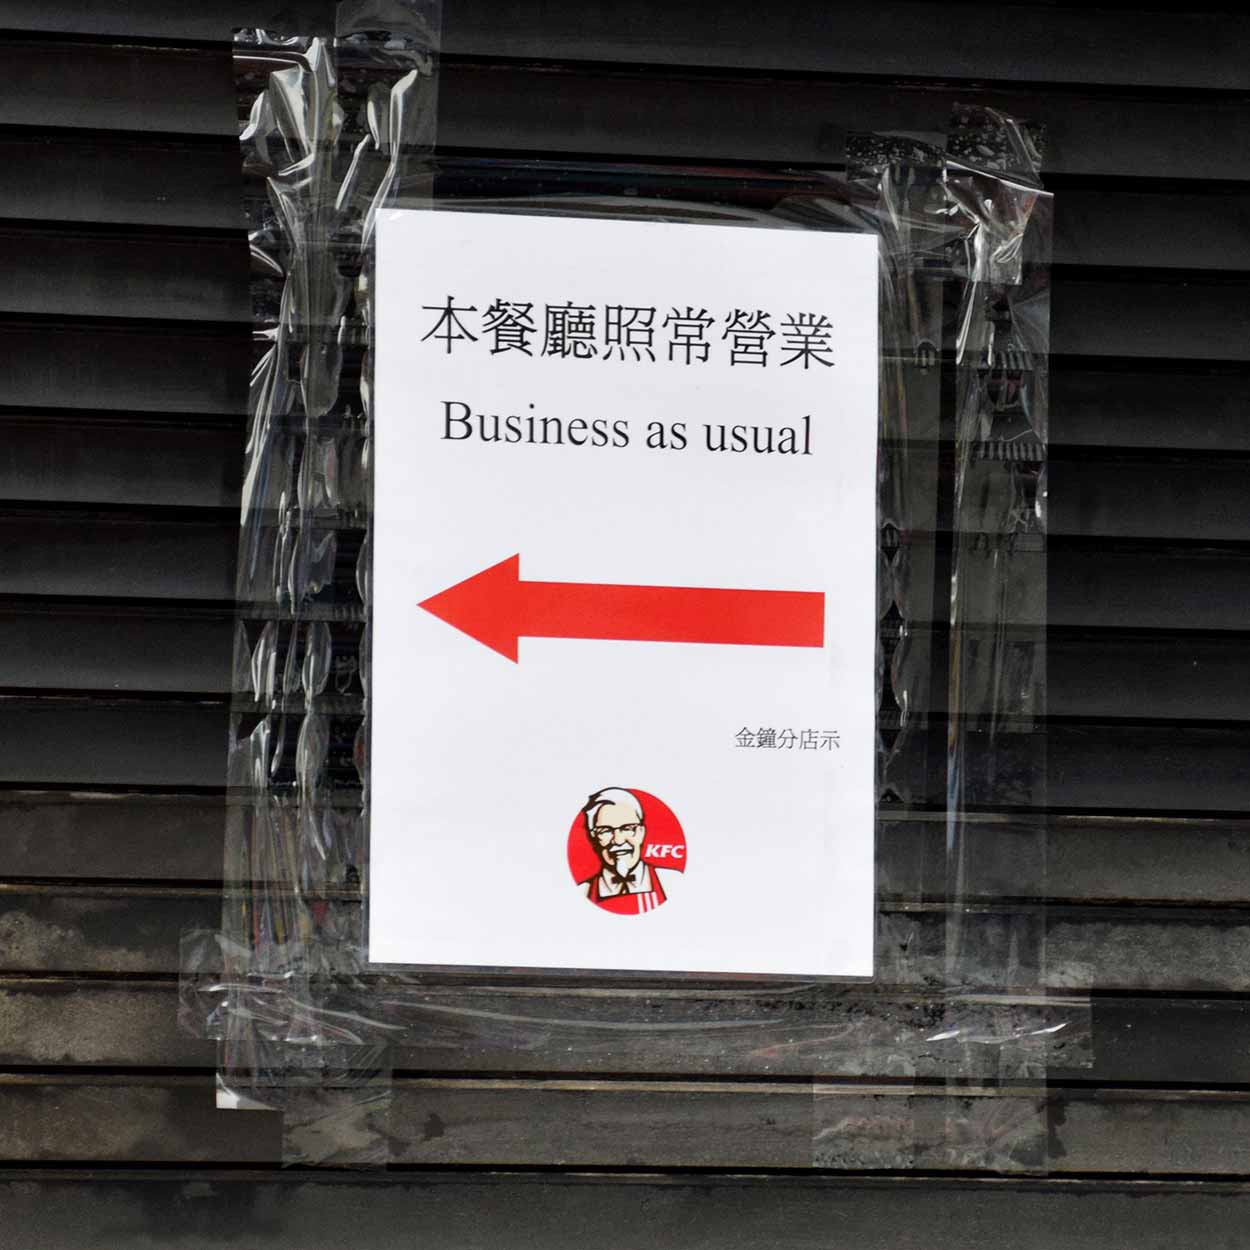 Even with the Umbrella Revolution on its doorstep it is still business as usual at KFC., Admiralty, Hong Kong, China